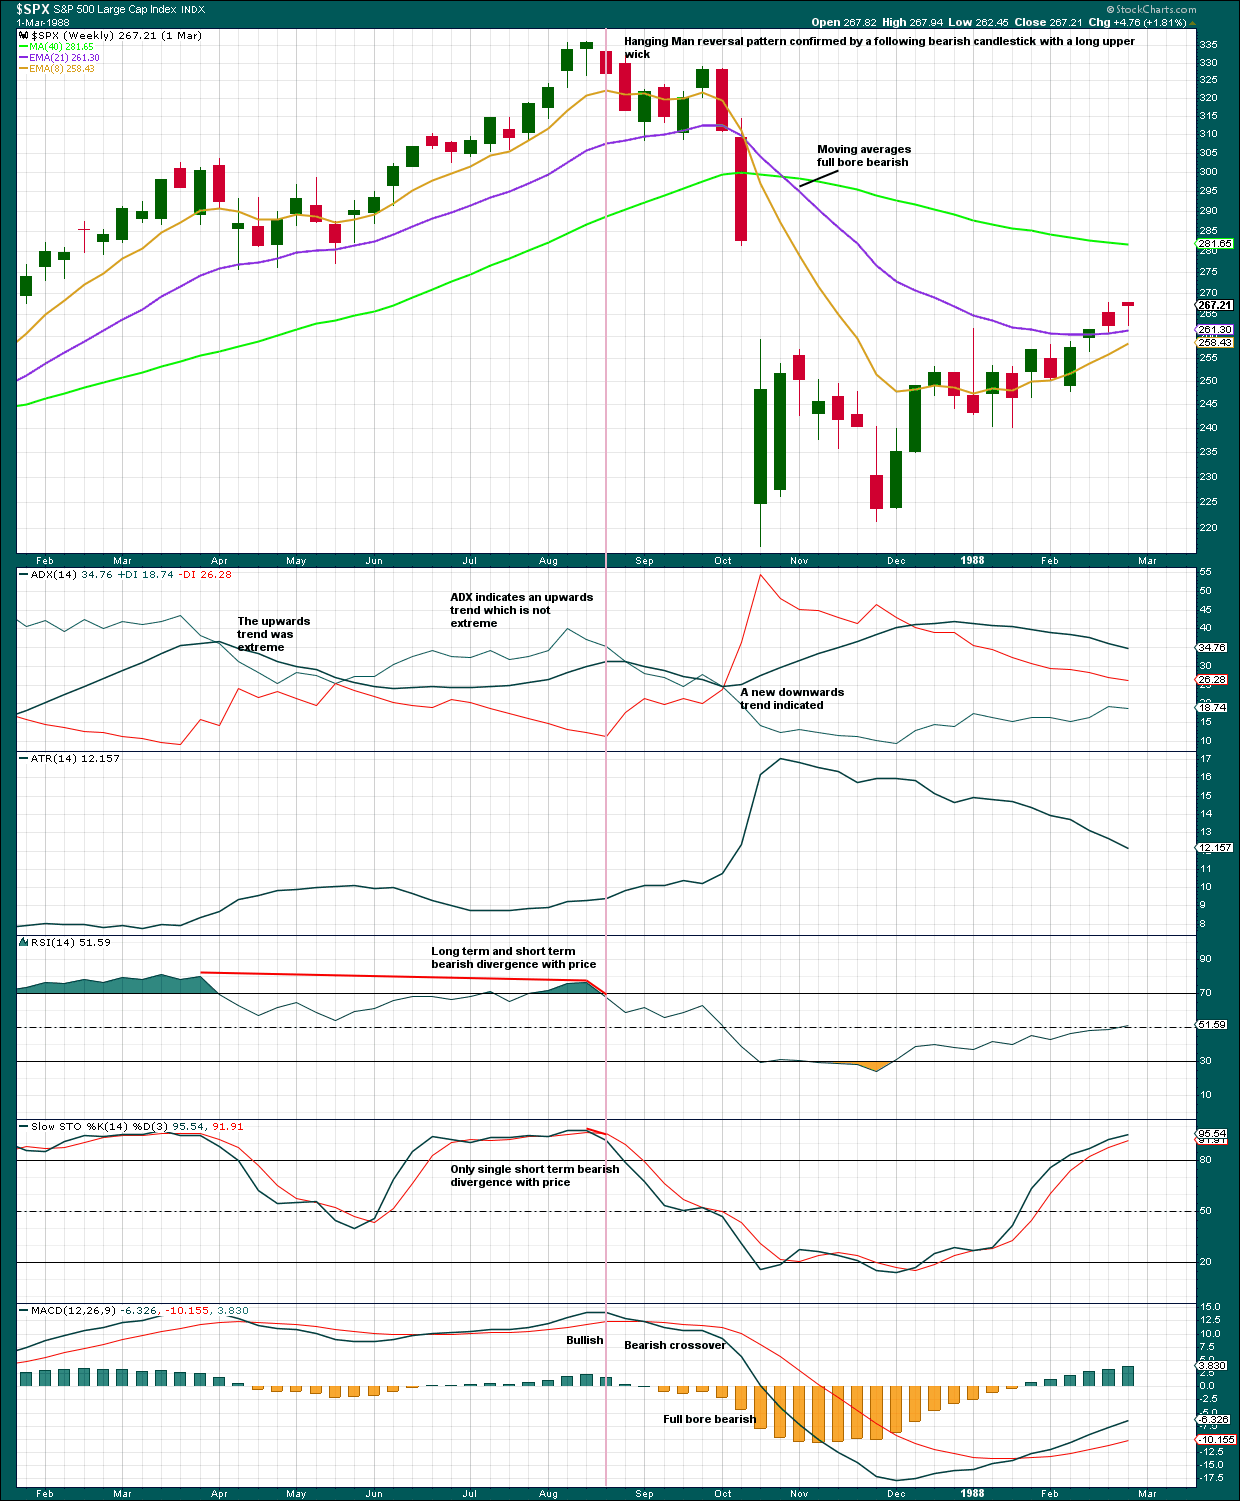 S&P 500 Weekly 1987